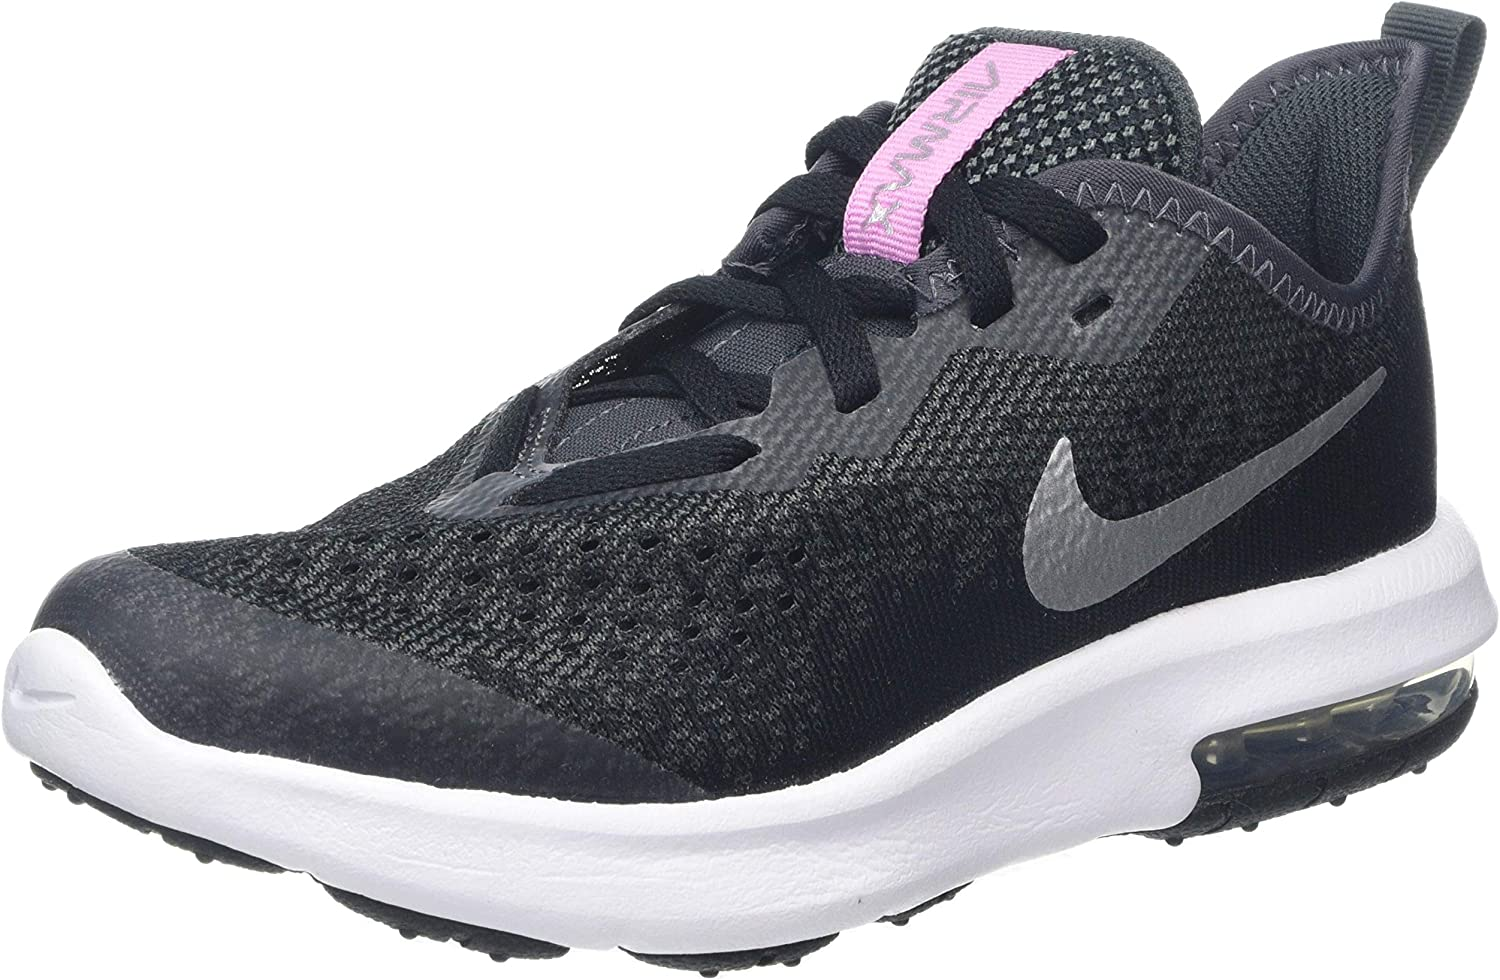 Air Max Sequent 4 (Ps) Running Shoes